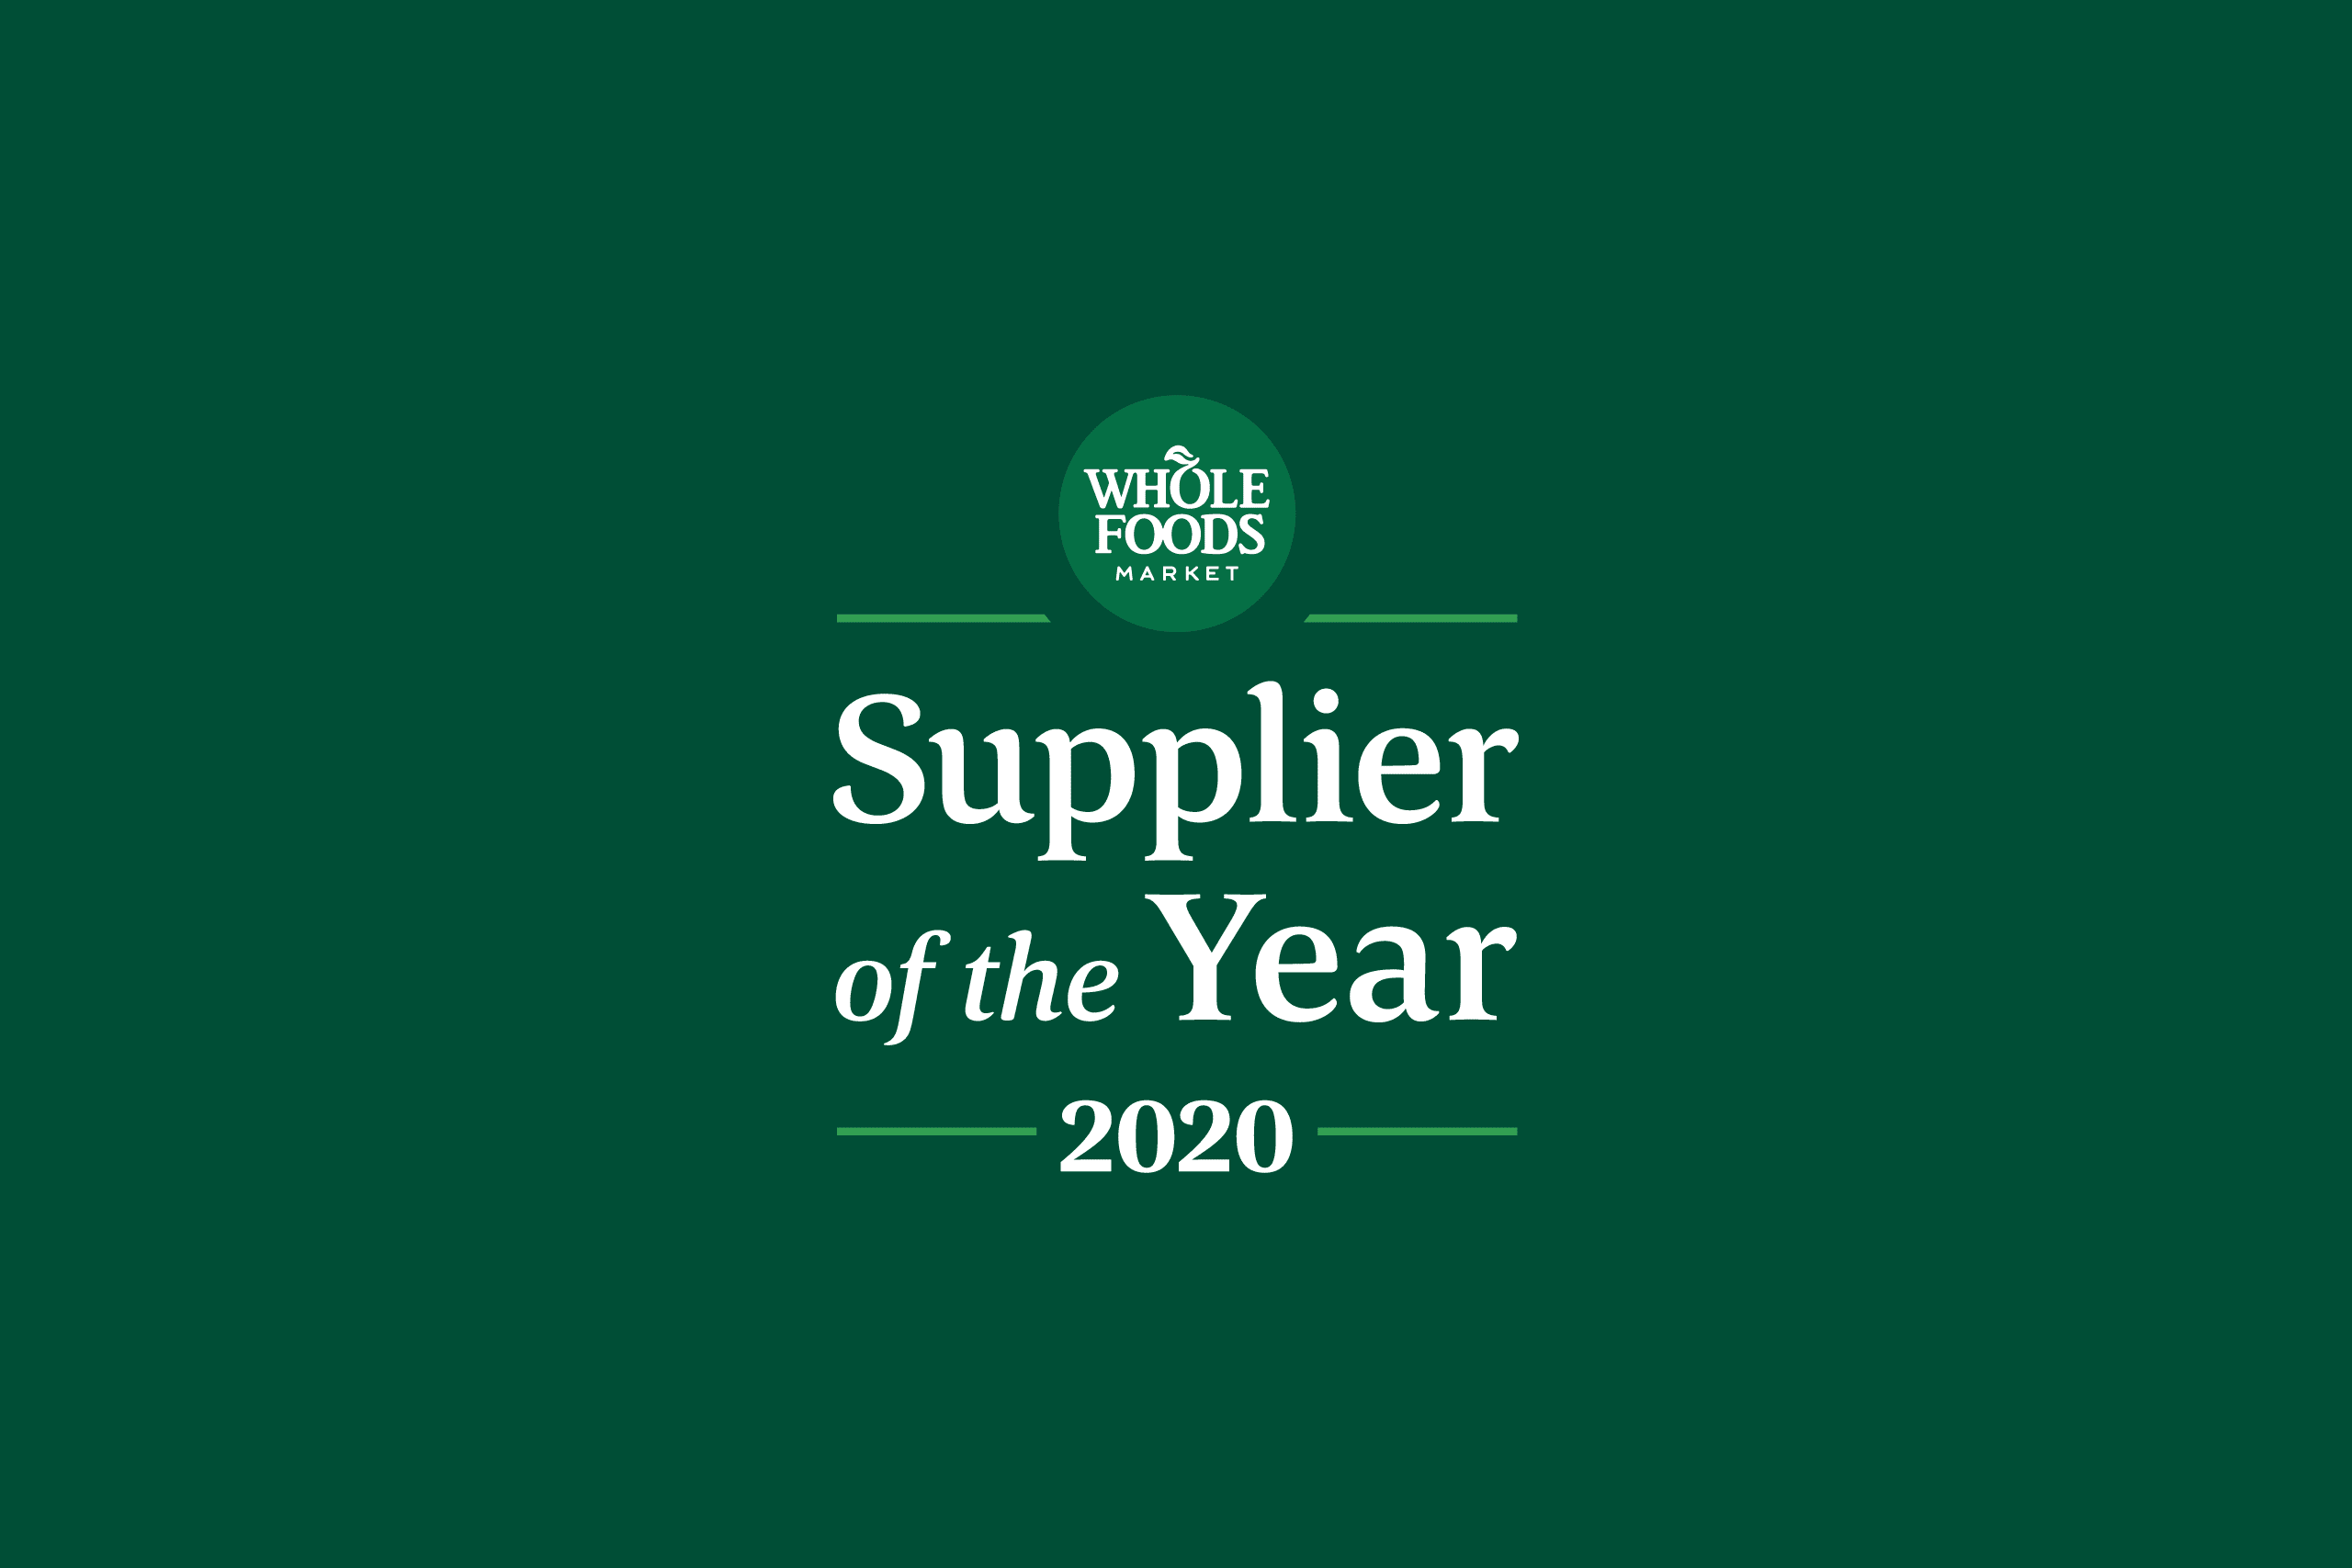 Whole Foods Market announces winners of ninth annual Supplier Awards